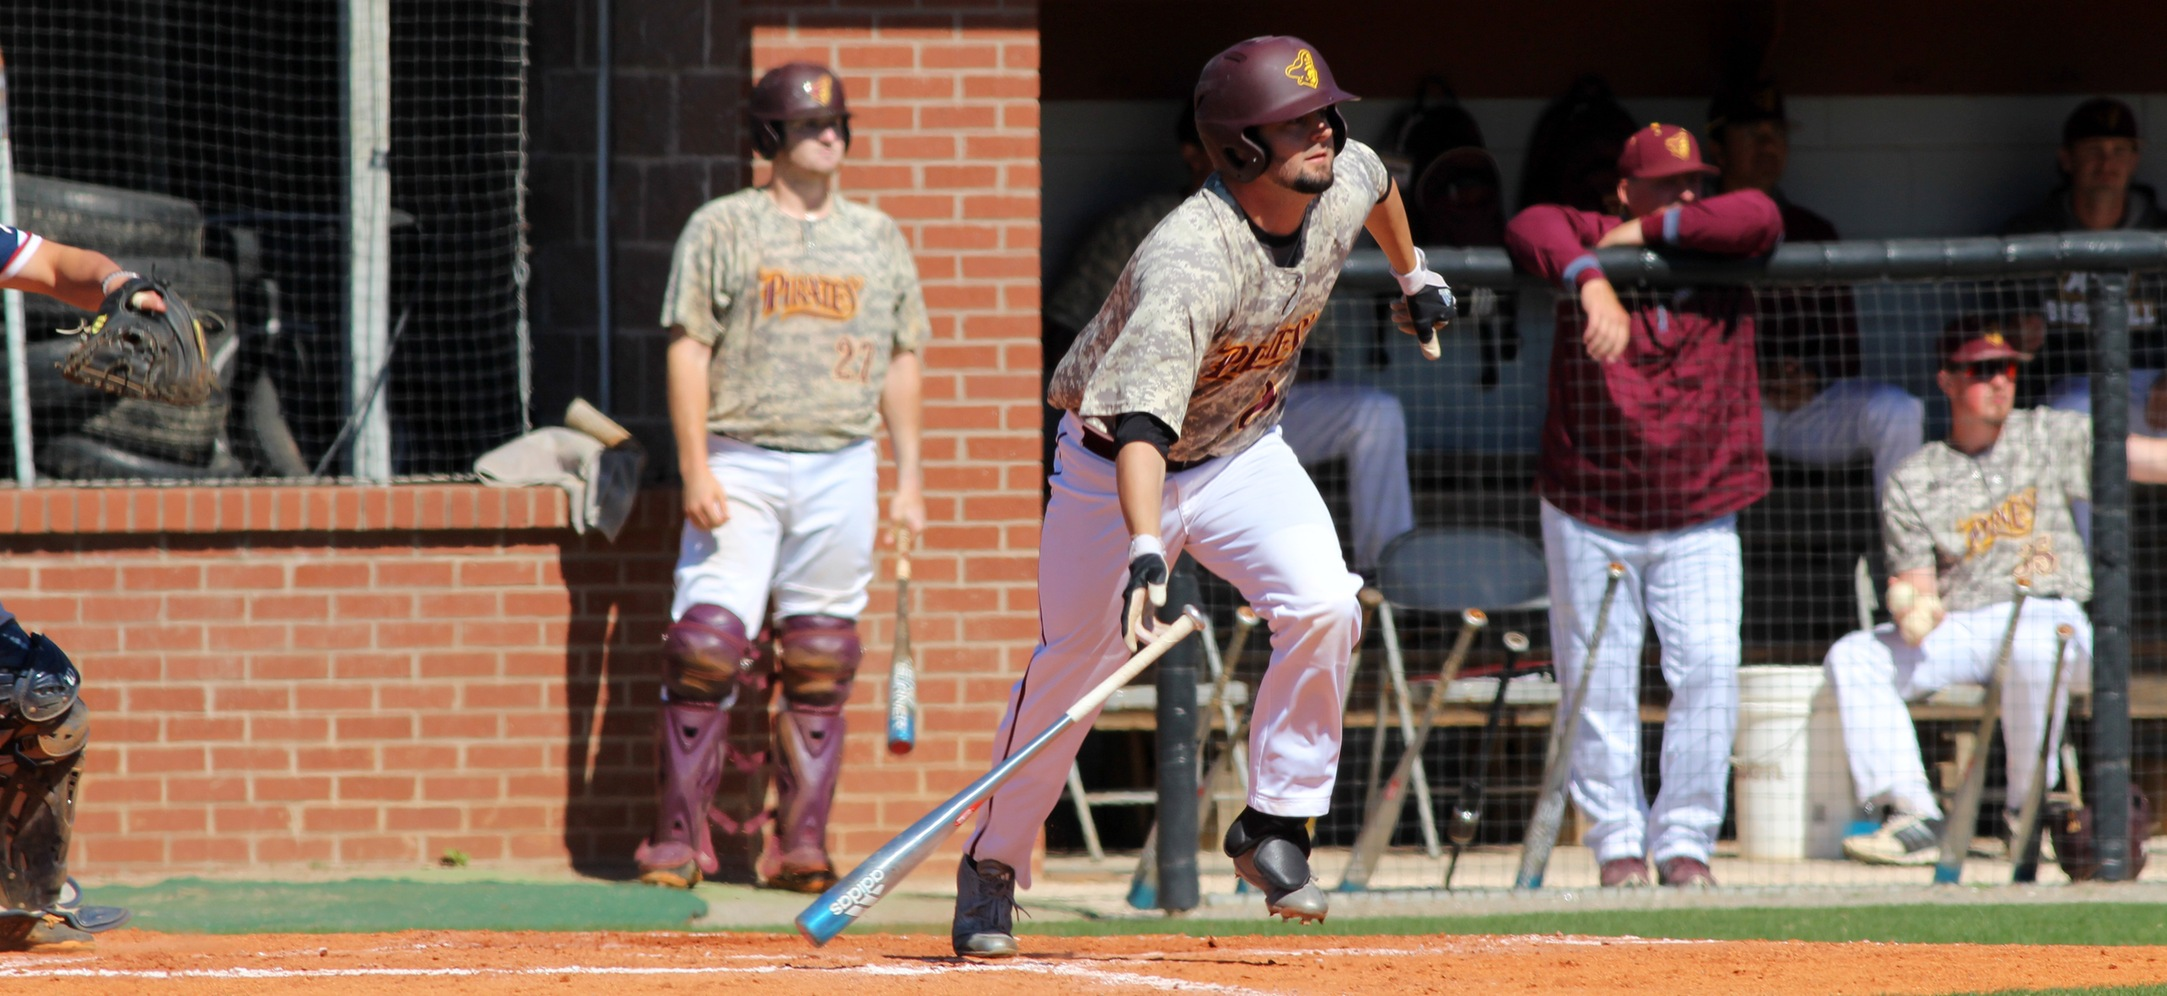 No. 9 USC Aiken Collects 7-2 PBC Win Over Pirate Baseball Saturday